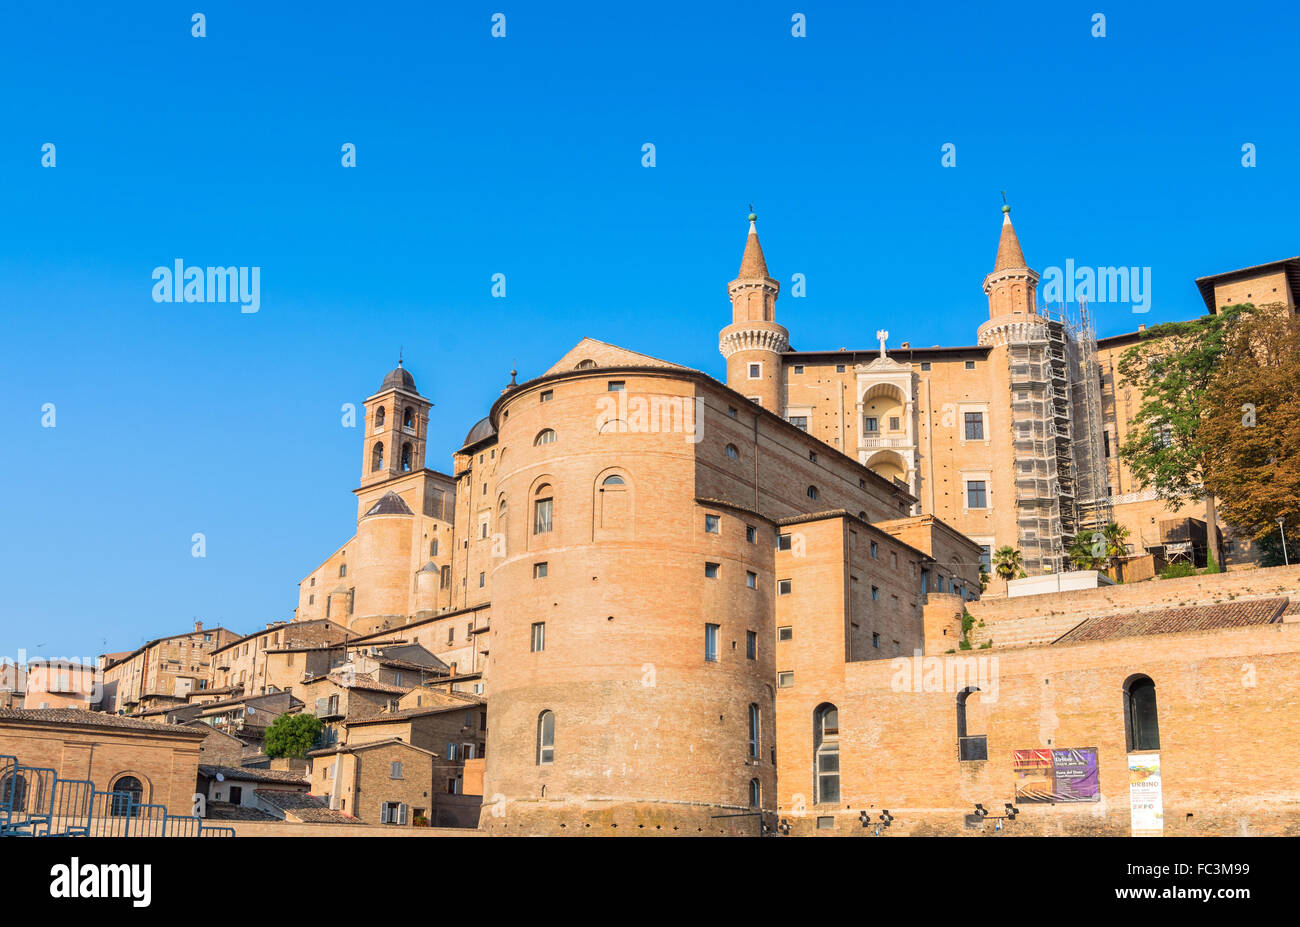 skyline with Ducal Palace in Urbino, Italy. Stock Photo